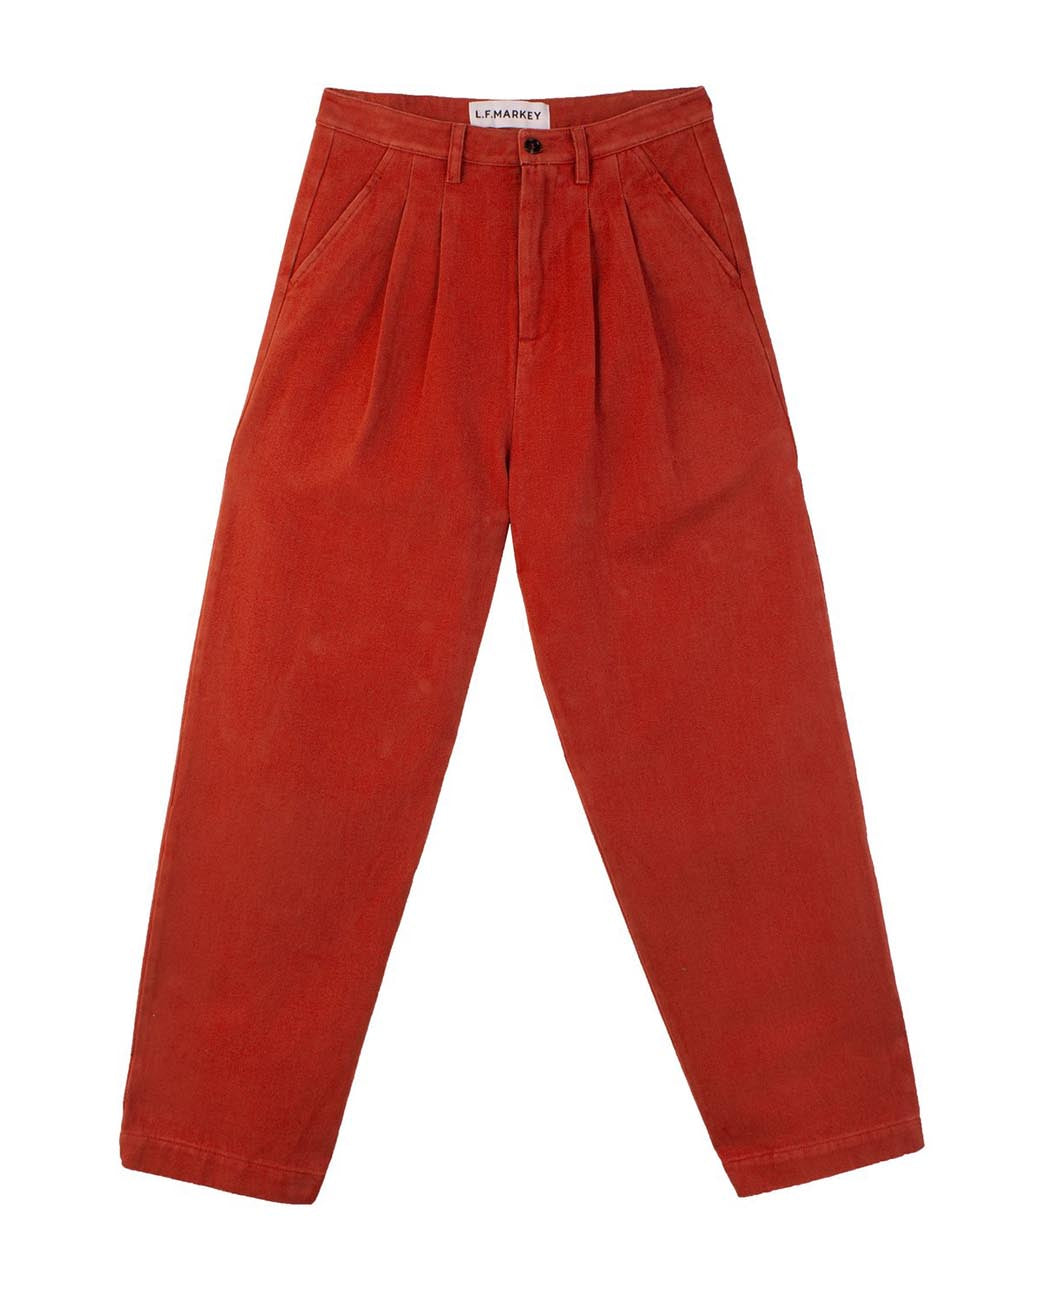 L F Markey Classic Slacks Brick Red Pleated Trousers